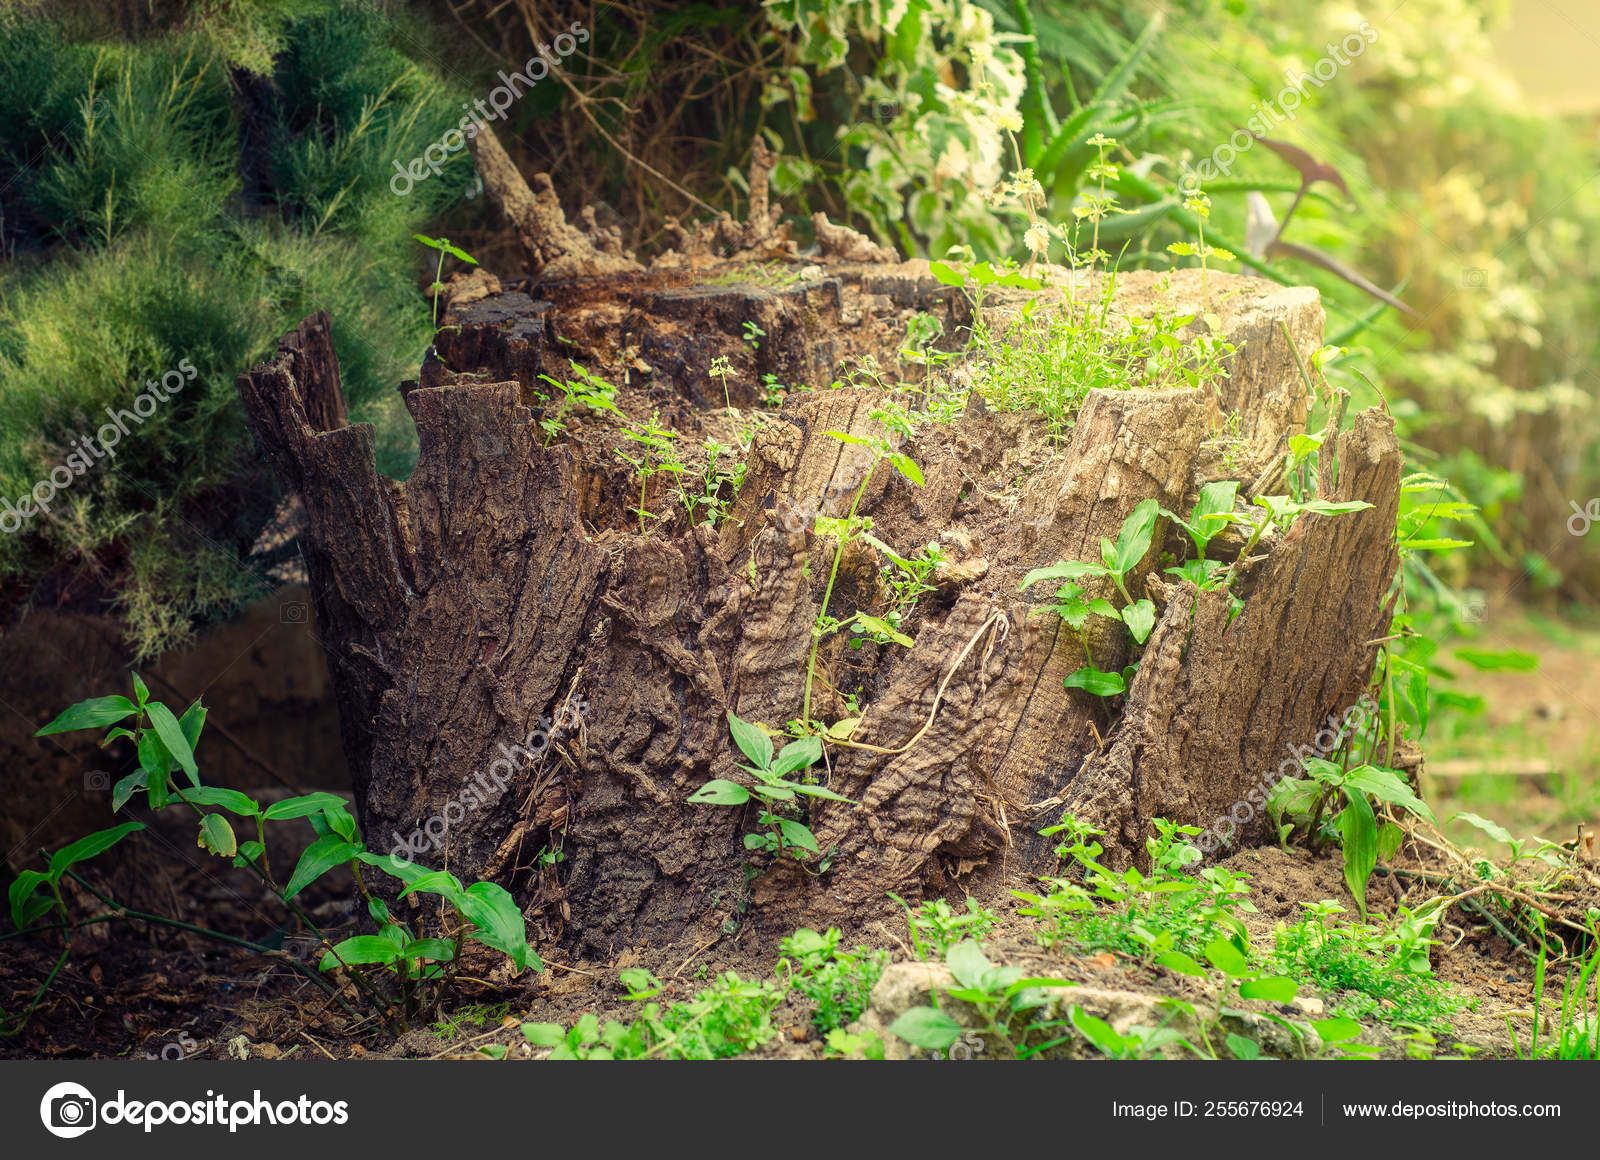 Young green grass grows on an old rotten stump in a sunny garden. Close-up picture.